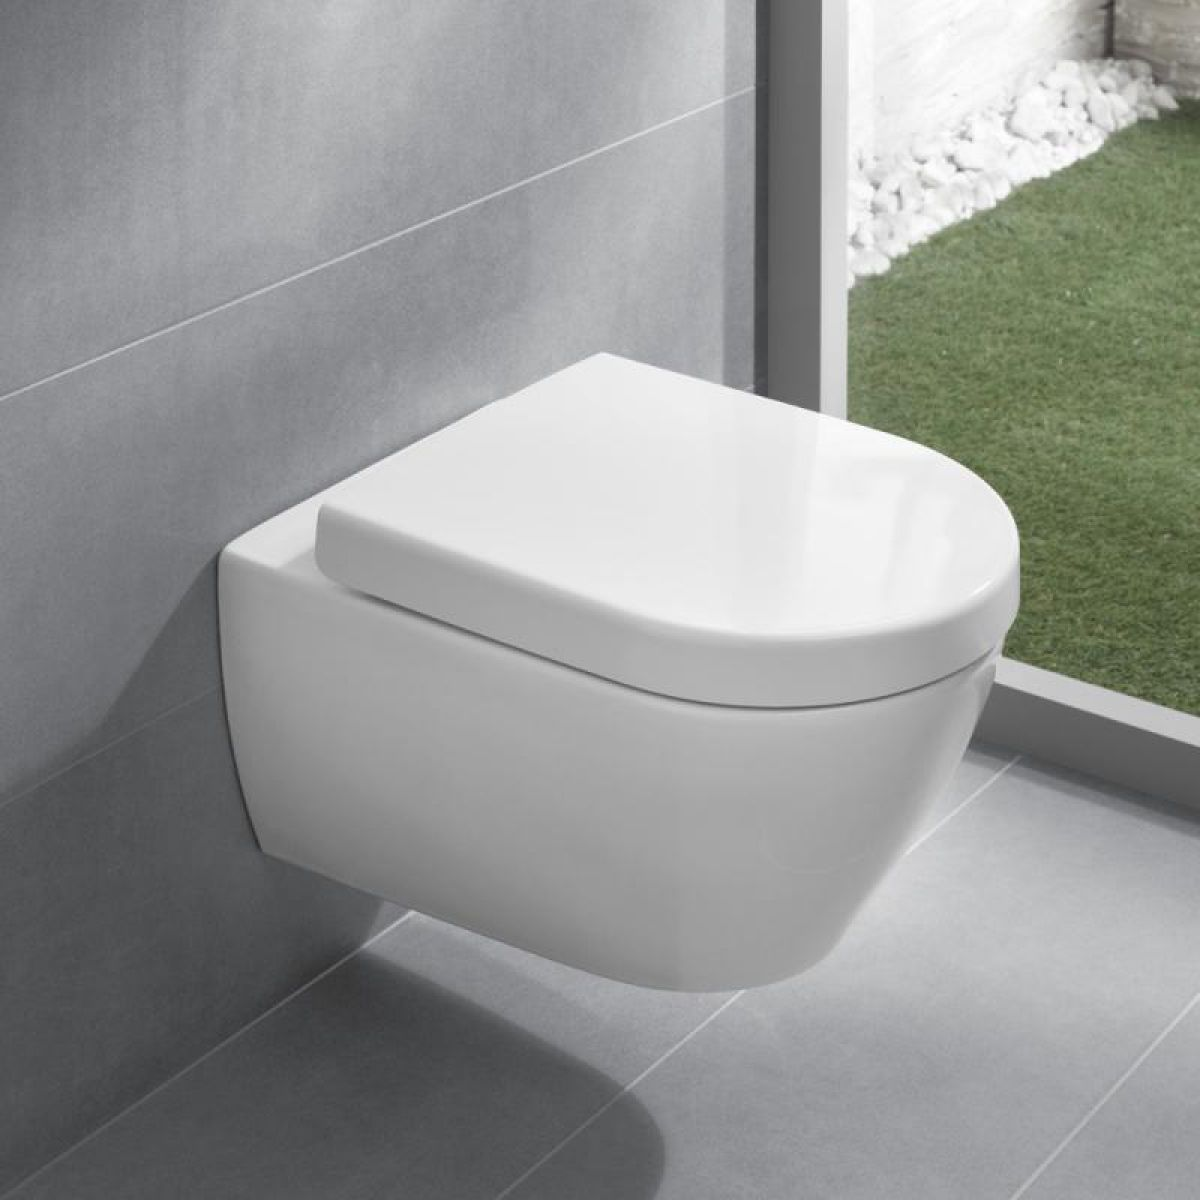 Cool Villeroy Boch Subway 2 0 Wall Mounted Pan In 2019 Bath Ncnpc Chair Design For Home Ncnpcorg